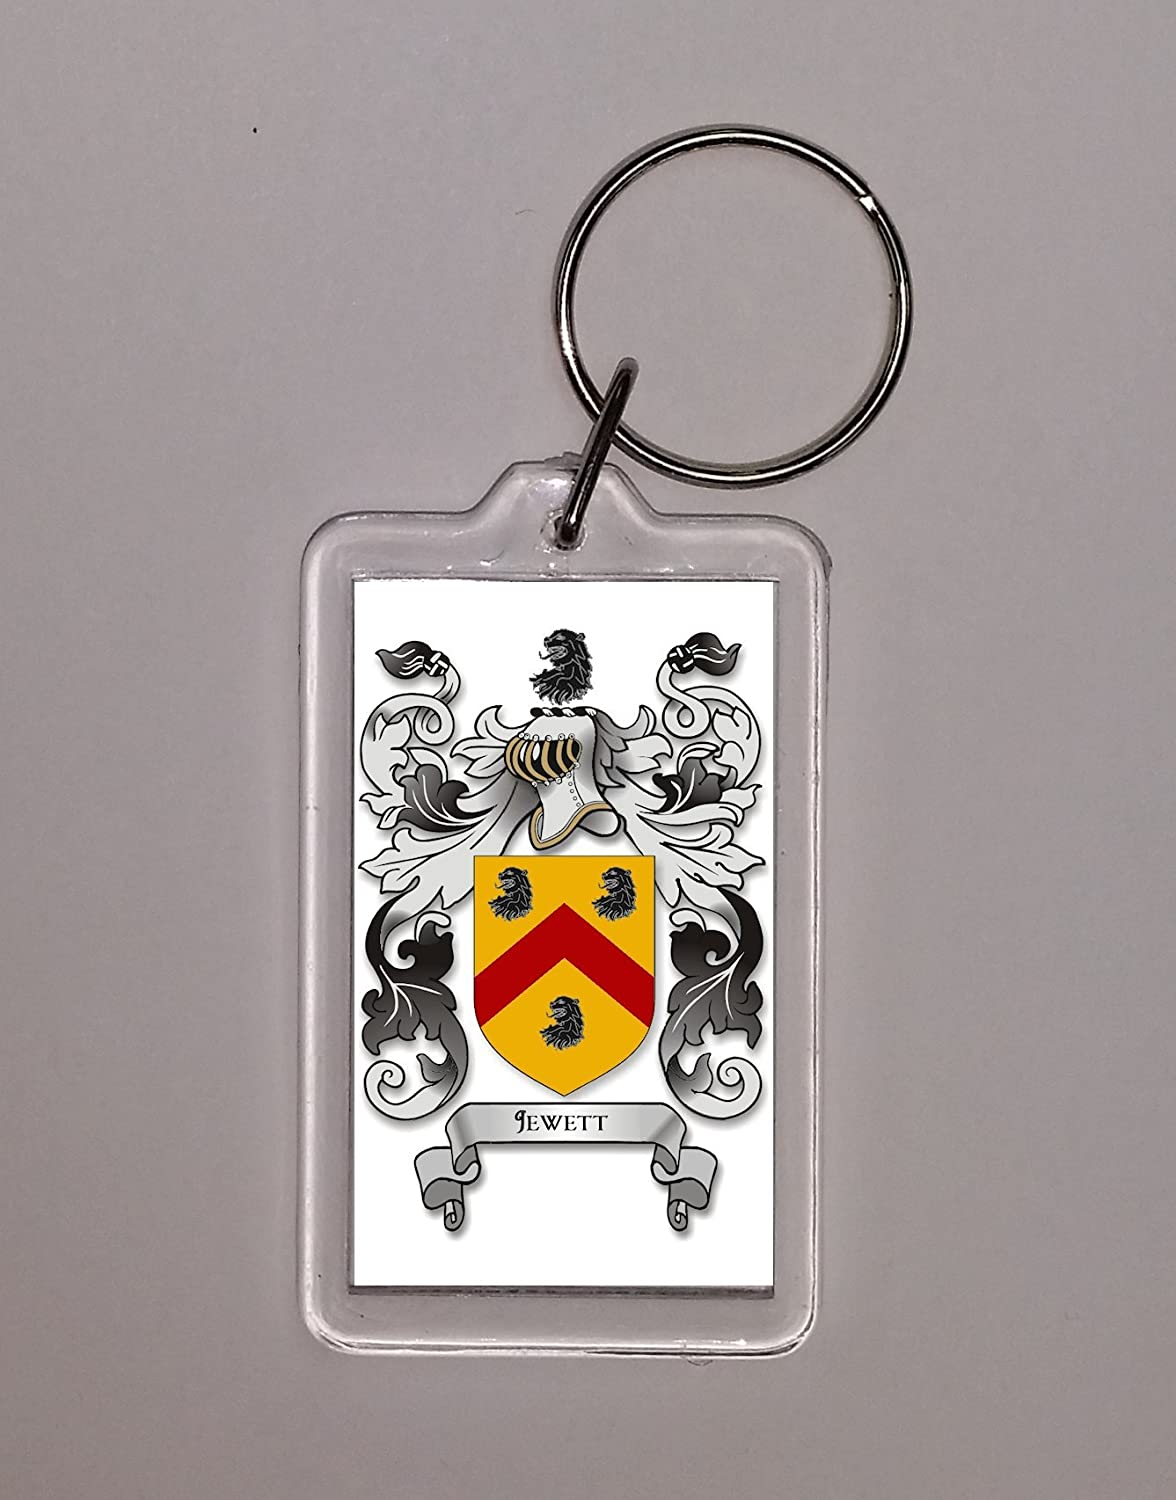 Picar Keychain - Key Chain - Key Ring - Coat of Arms - Family Crest - Genealogy - Heraldry - Heraldic pavone family crest square coasters coat of arms coasters set of 4